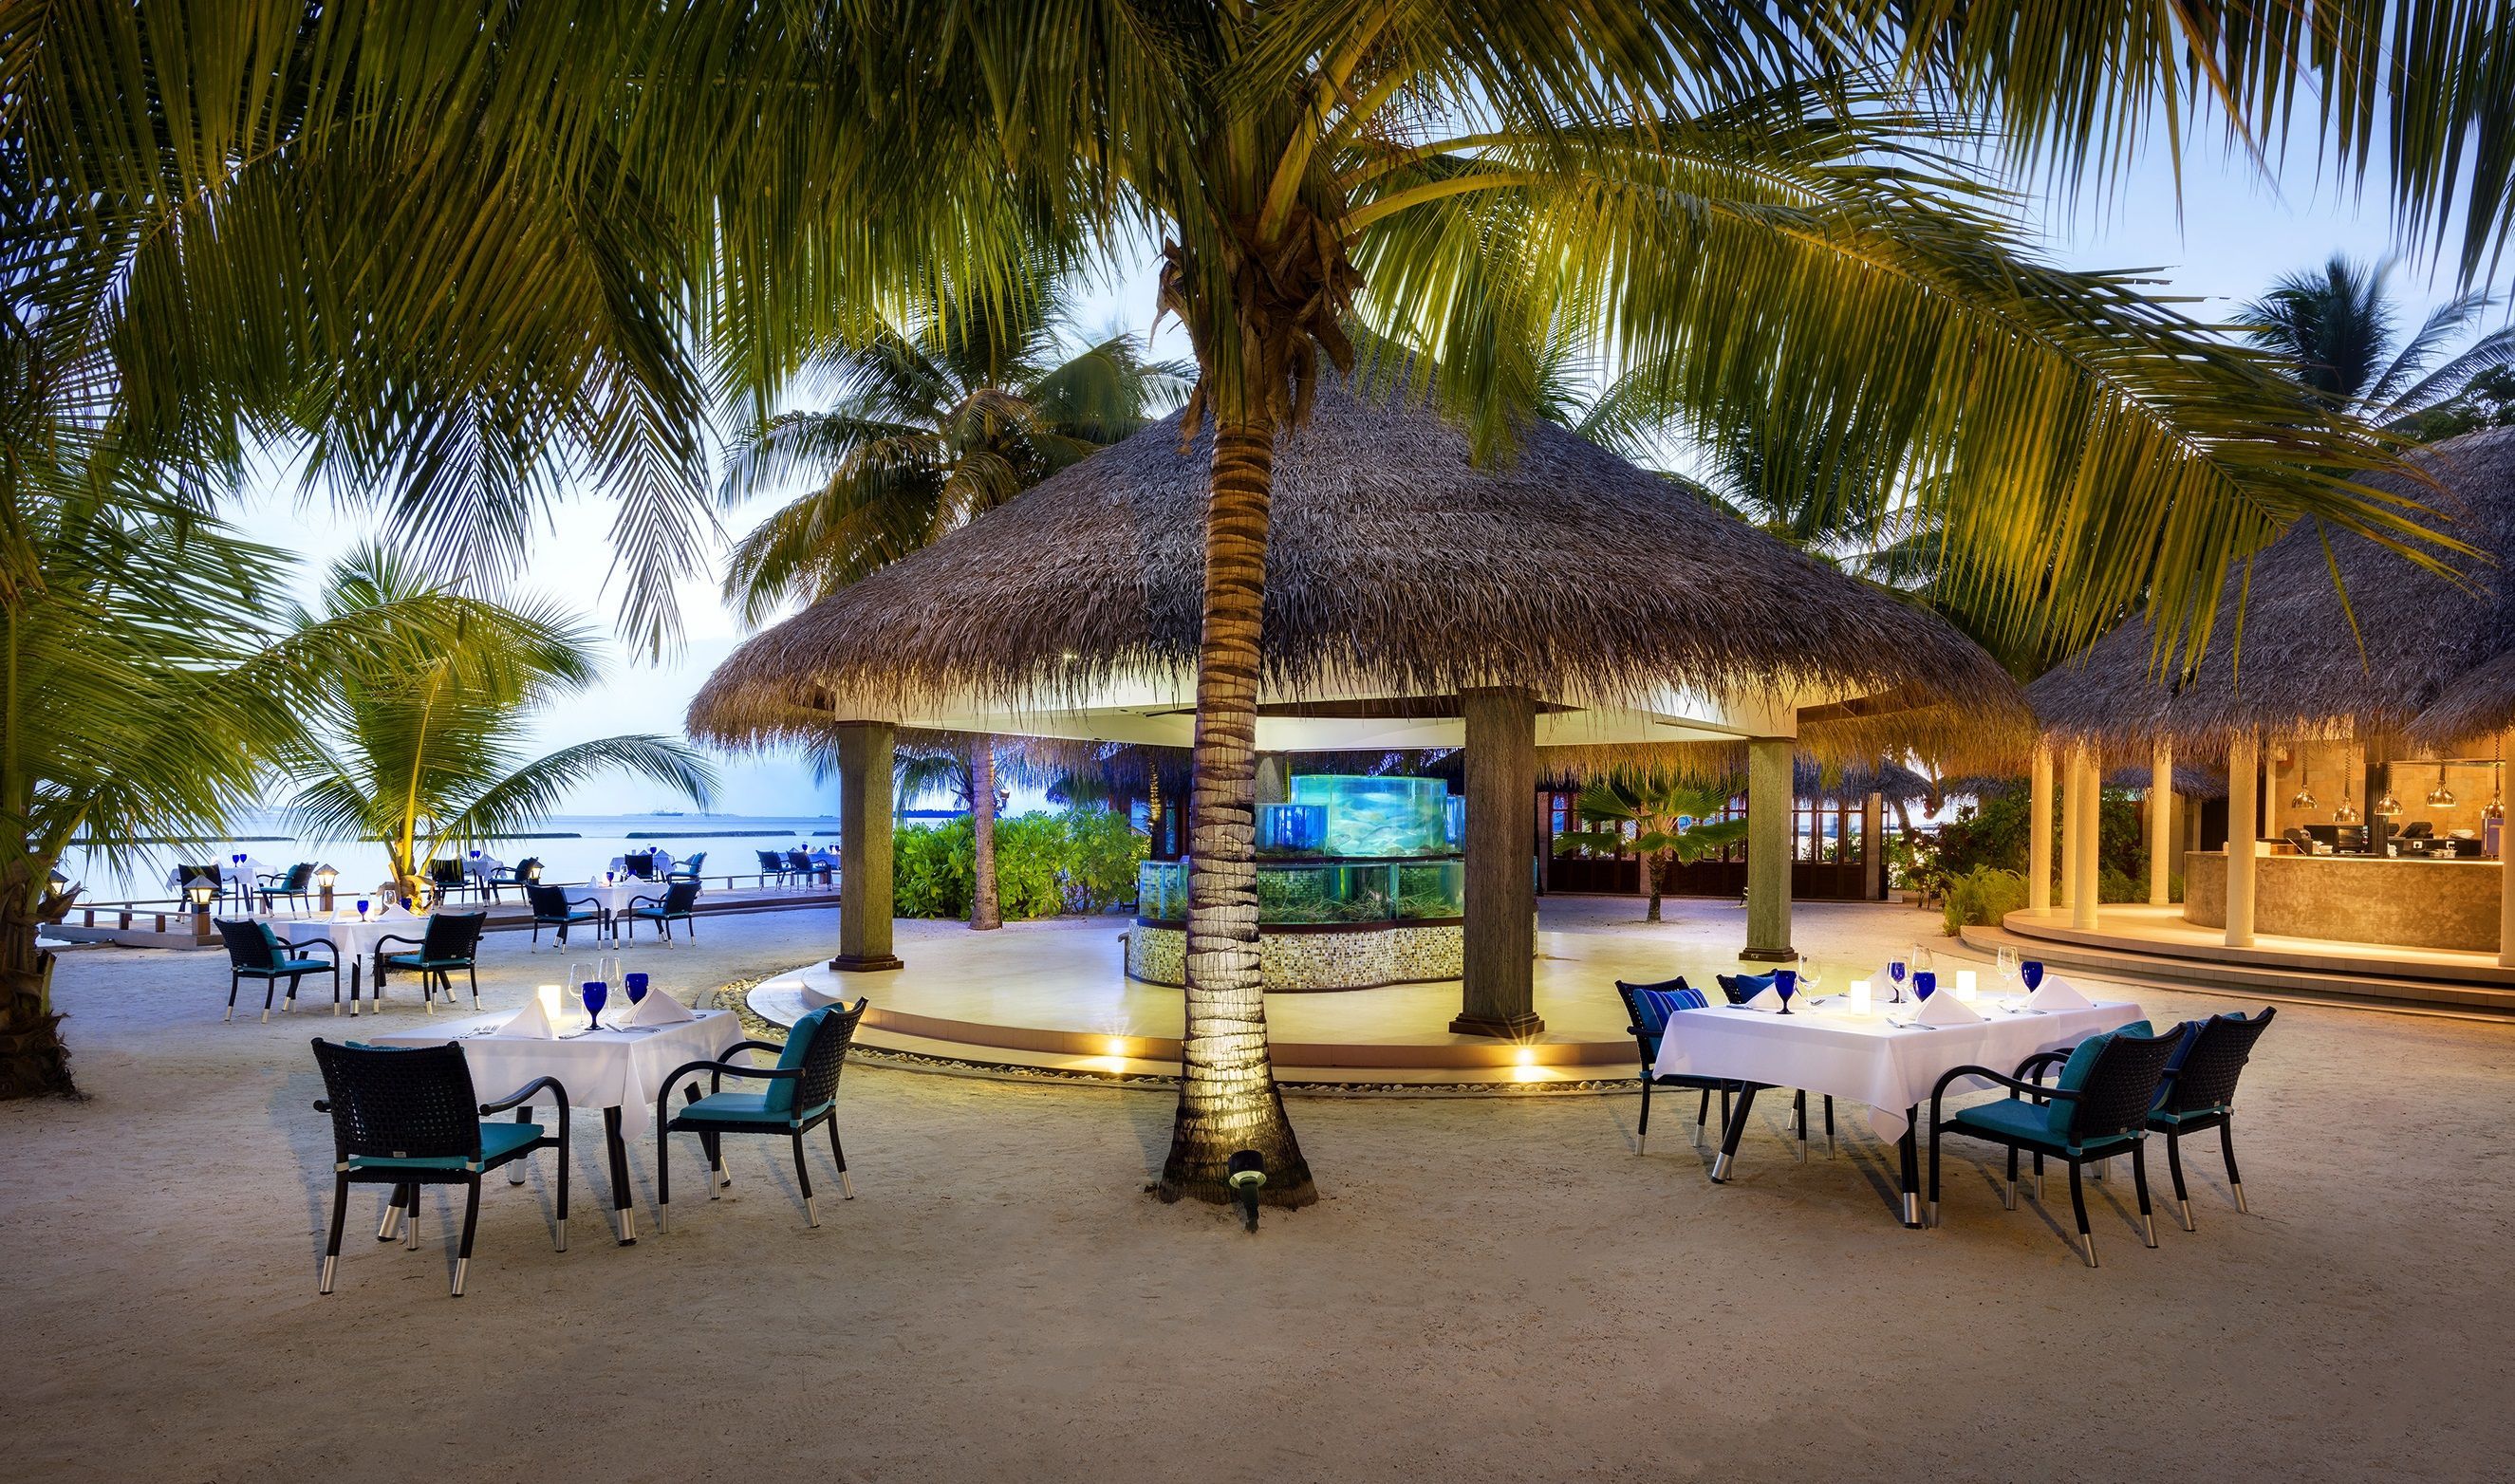 Adjacent to the lagoon, this unique restaurant allows you to enjoy the intimate atmosphere of casual, outdoor dining next to the beach. Enjoy live cooking stations as the chefs customize your meal just the way you like it.